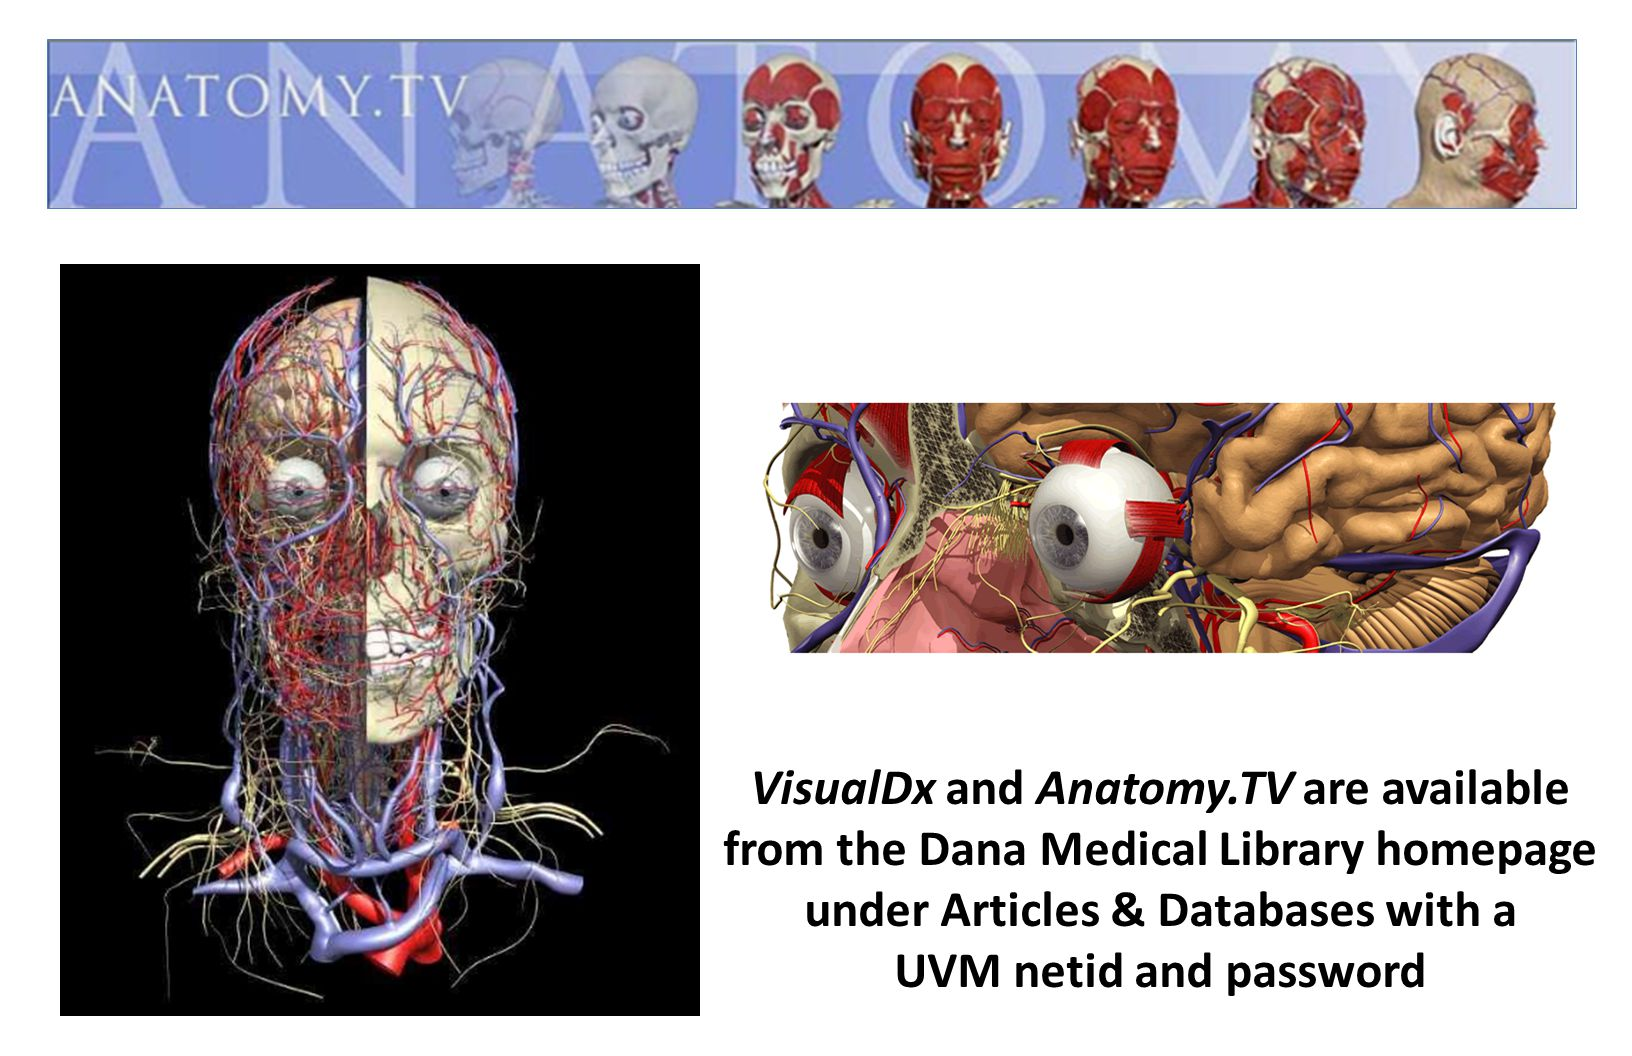 VisualDx and Anatomy.TV are available